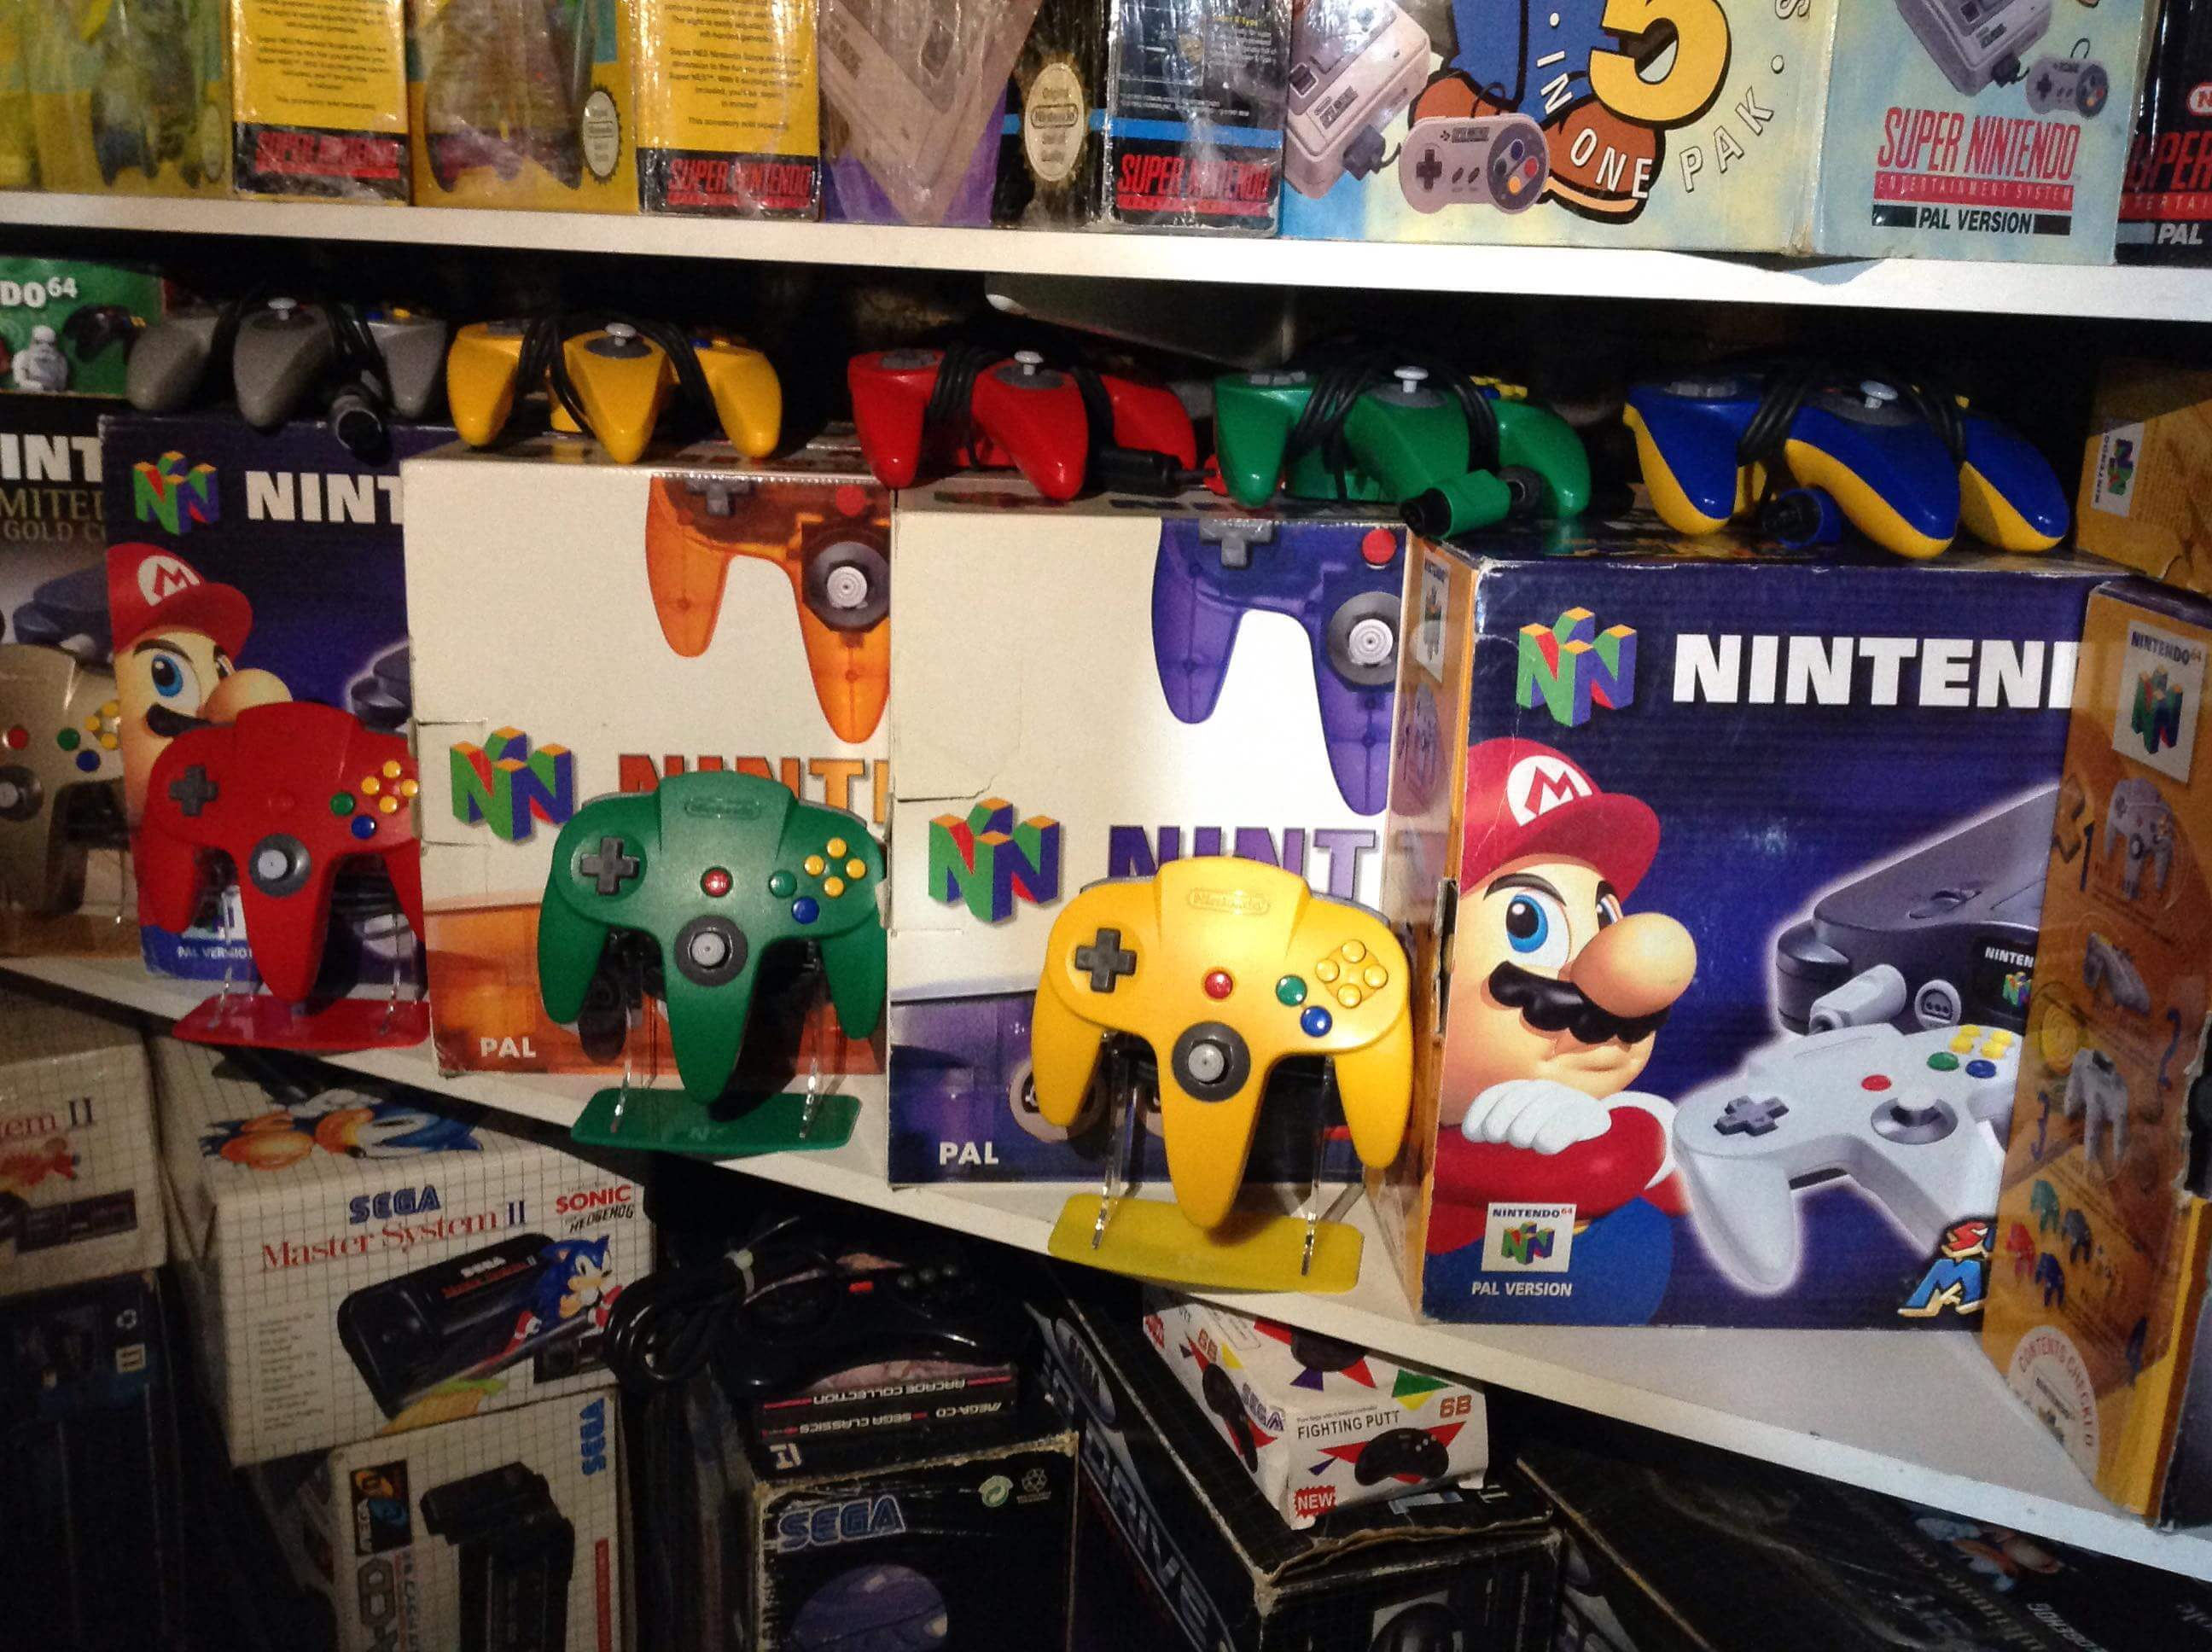 Customers N64 Retro Collection of Controller and Consoles with Gaming Displays Controller Stands